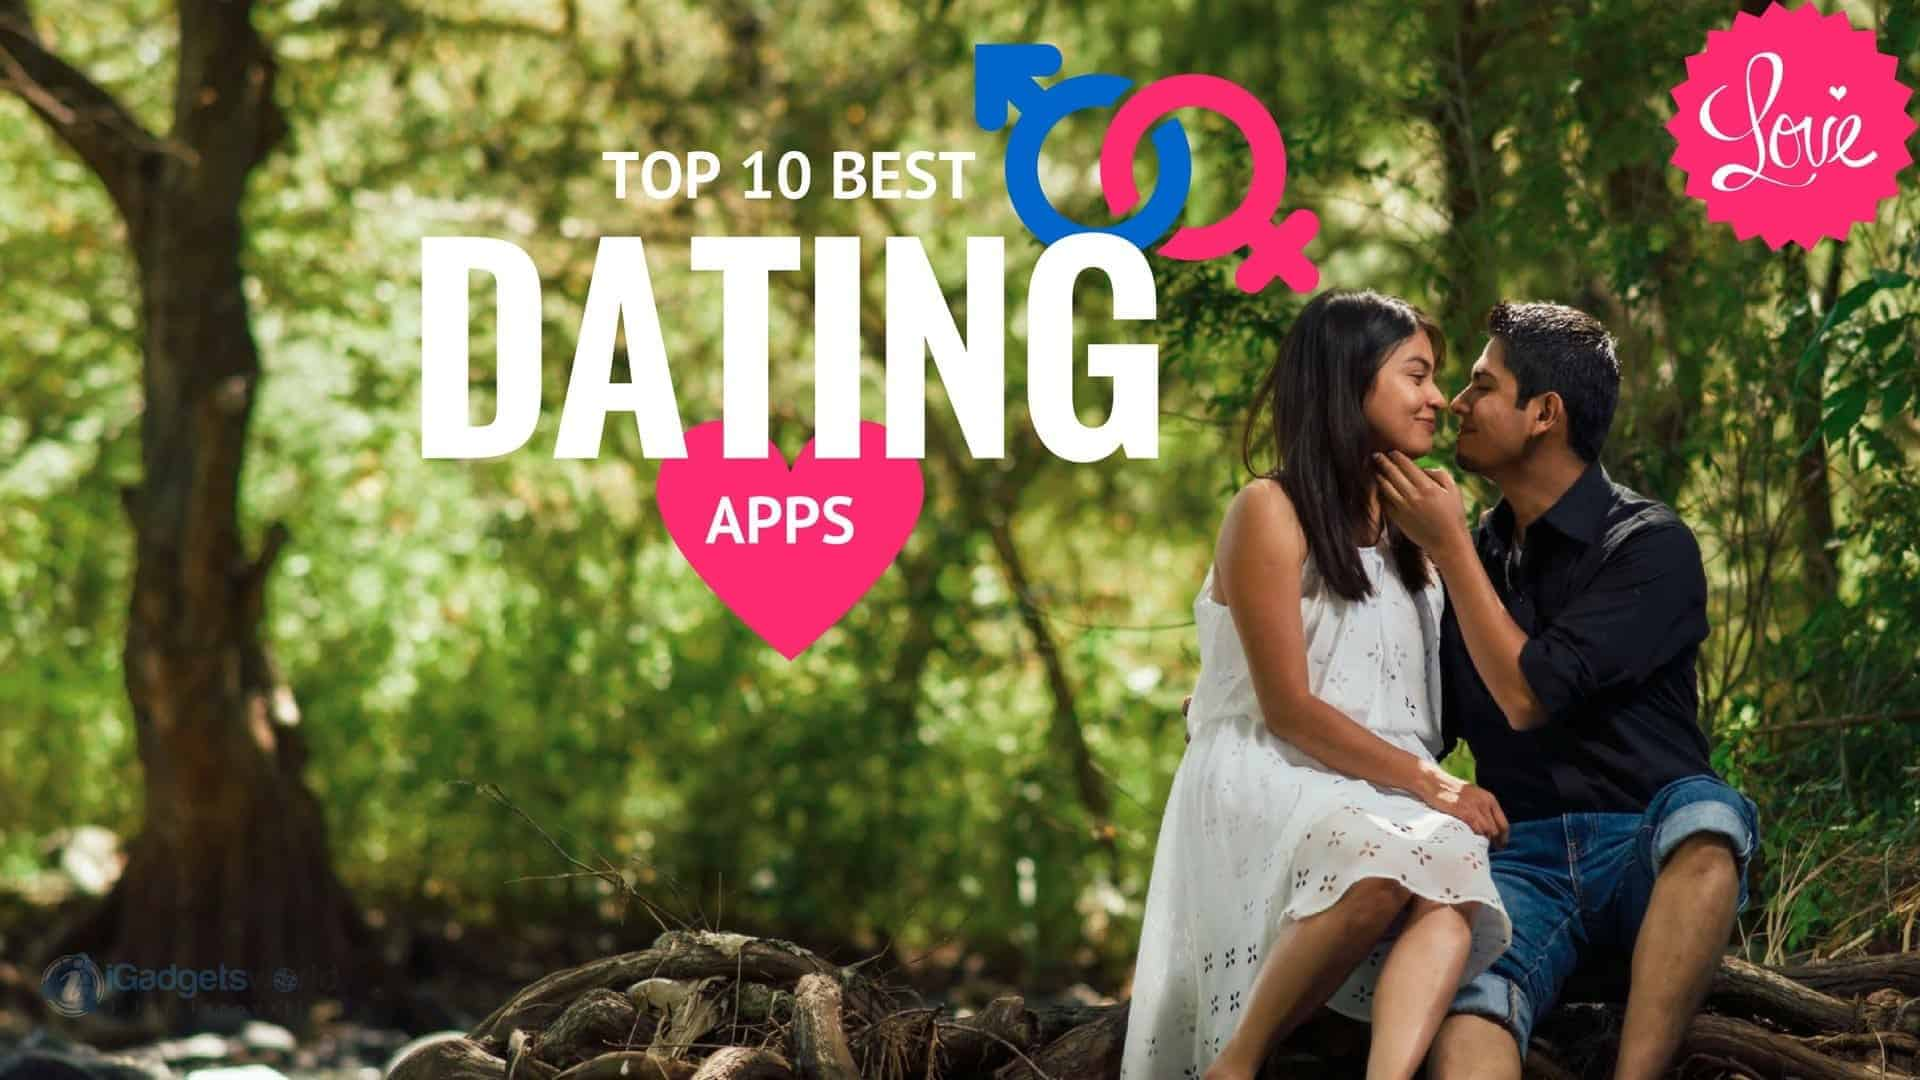 Best dating apps to find a relationship